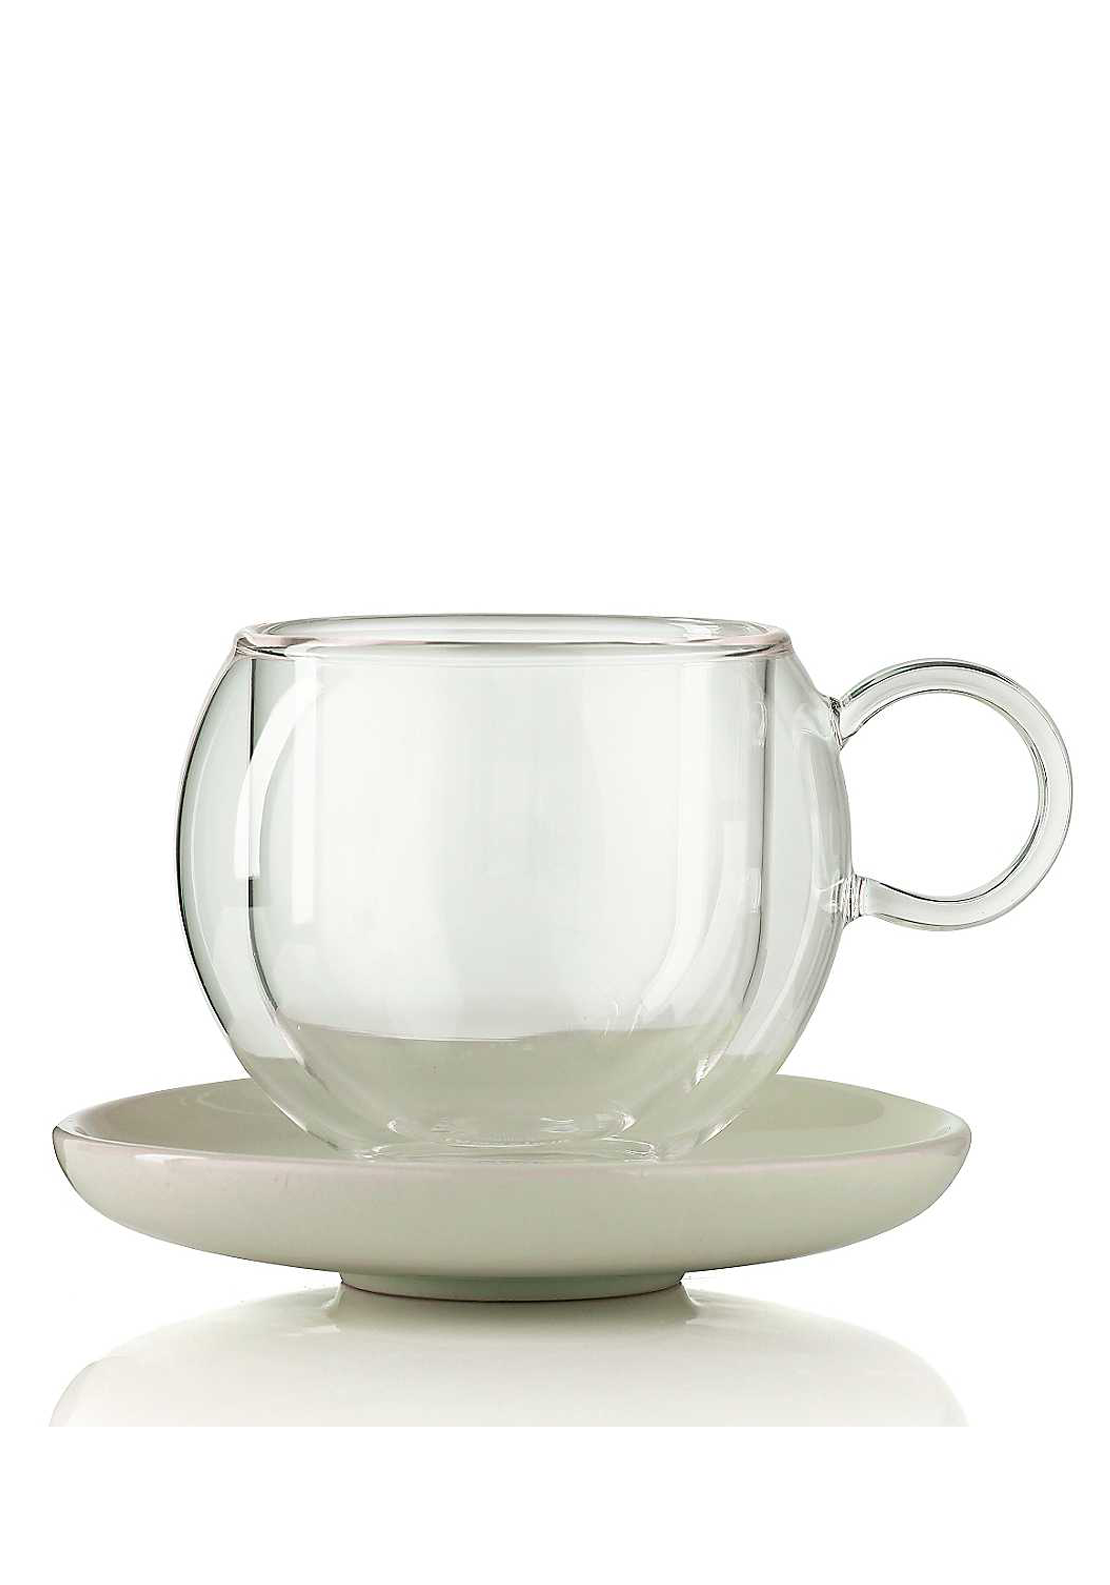 La Cafetiere Small Bola Cup & Saucer